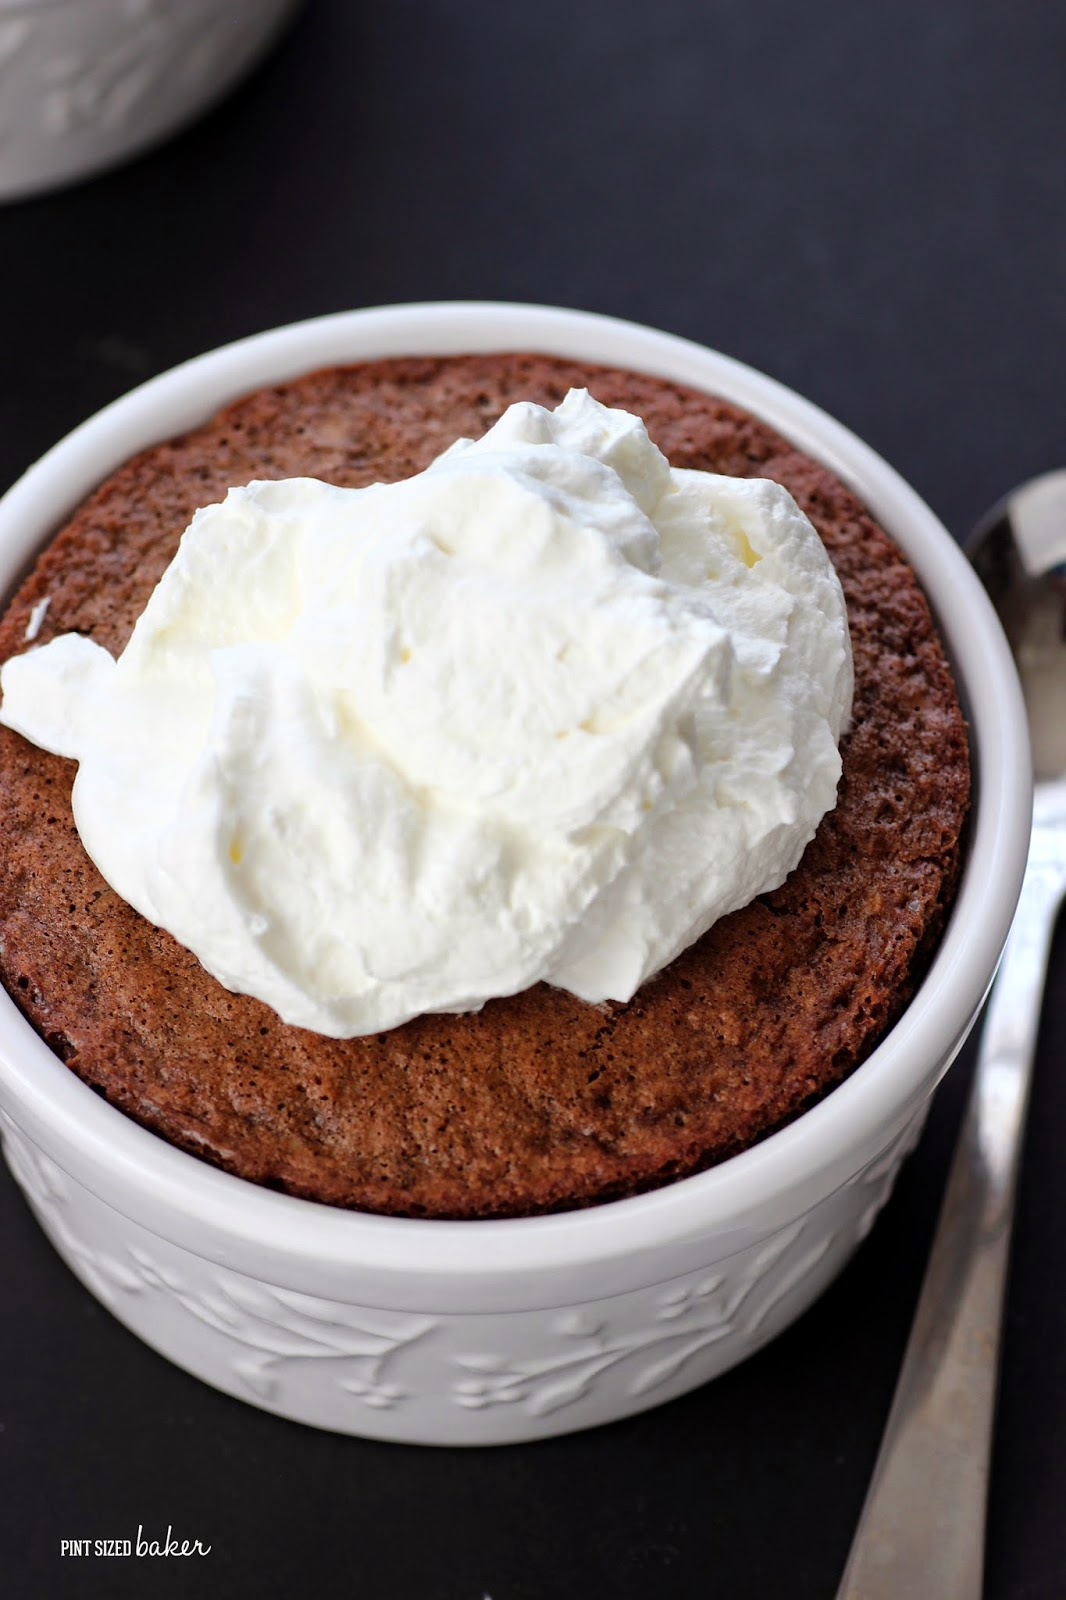 Perfect little individual Fudgy Cakes topped with sweeten whipped cream. It's just the right amount of chocolate goodness!